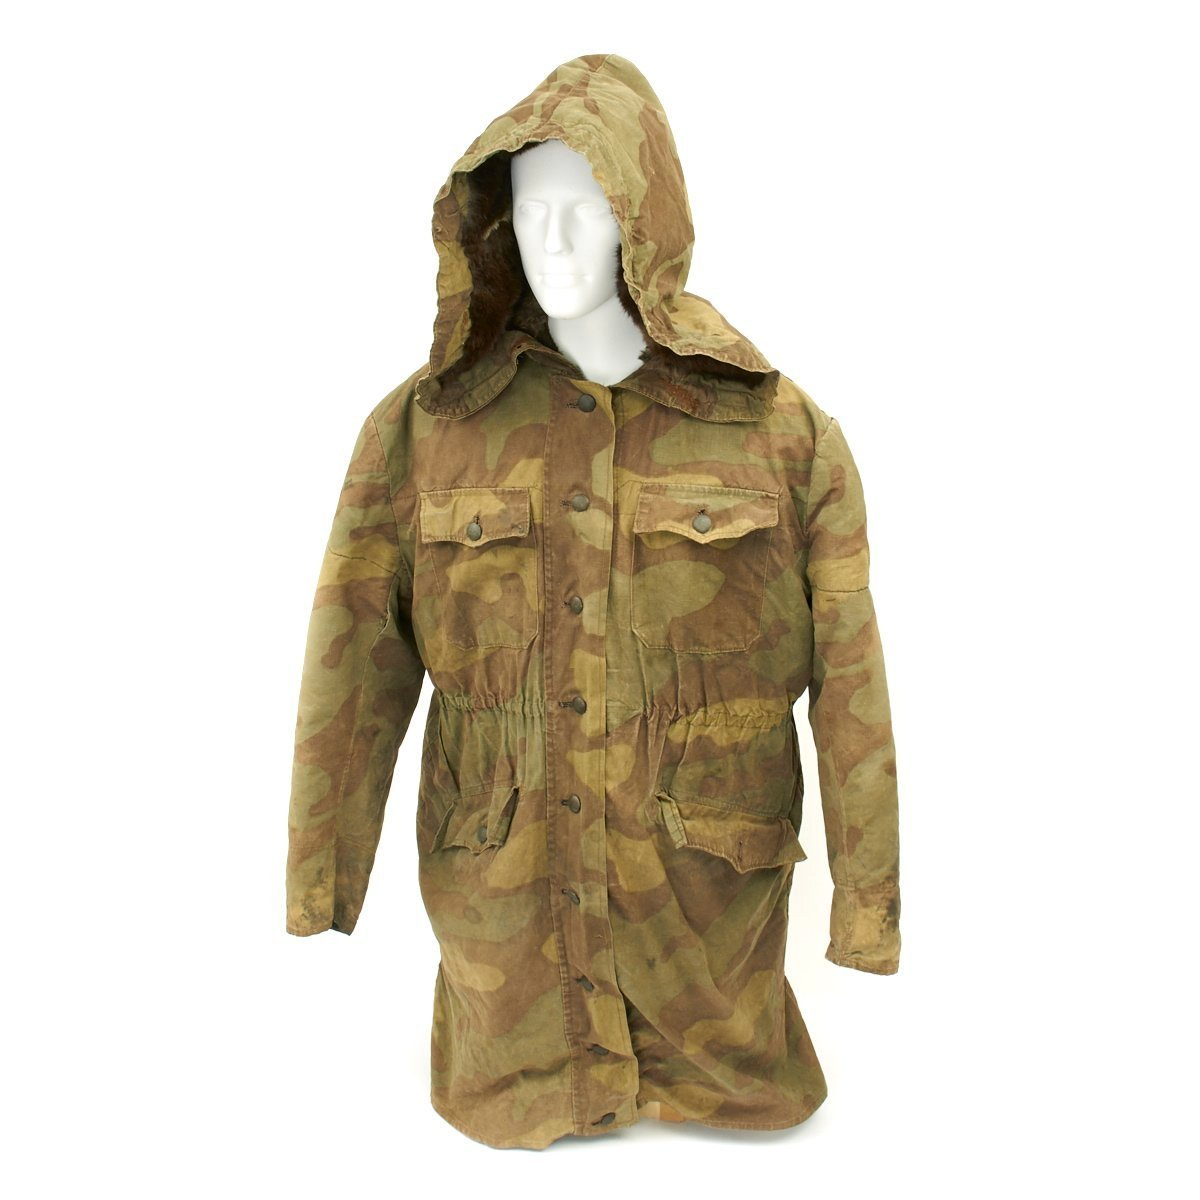 the latest e9a88 16d92 Original German WWII SS Italian Camouflage M1943 Winter ...